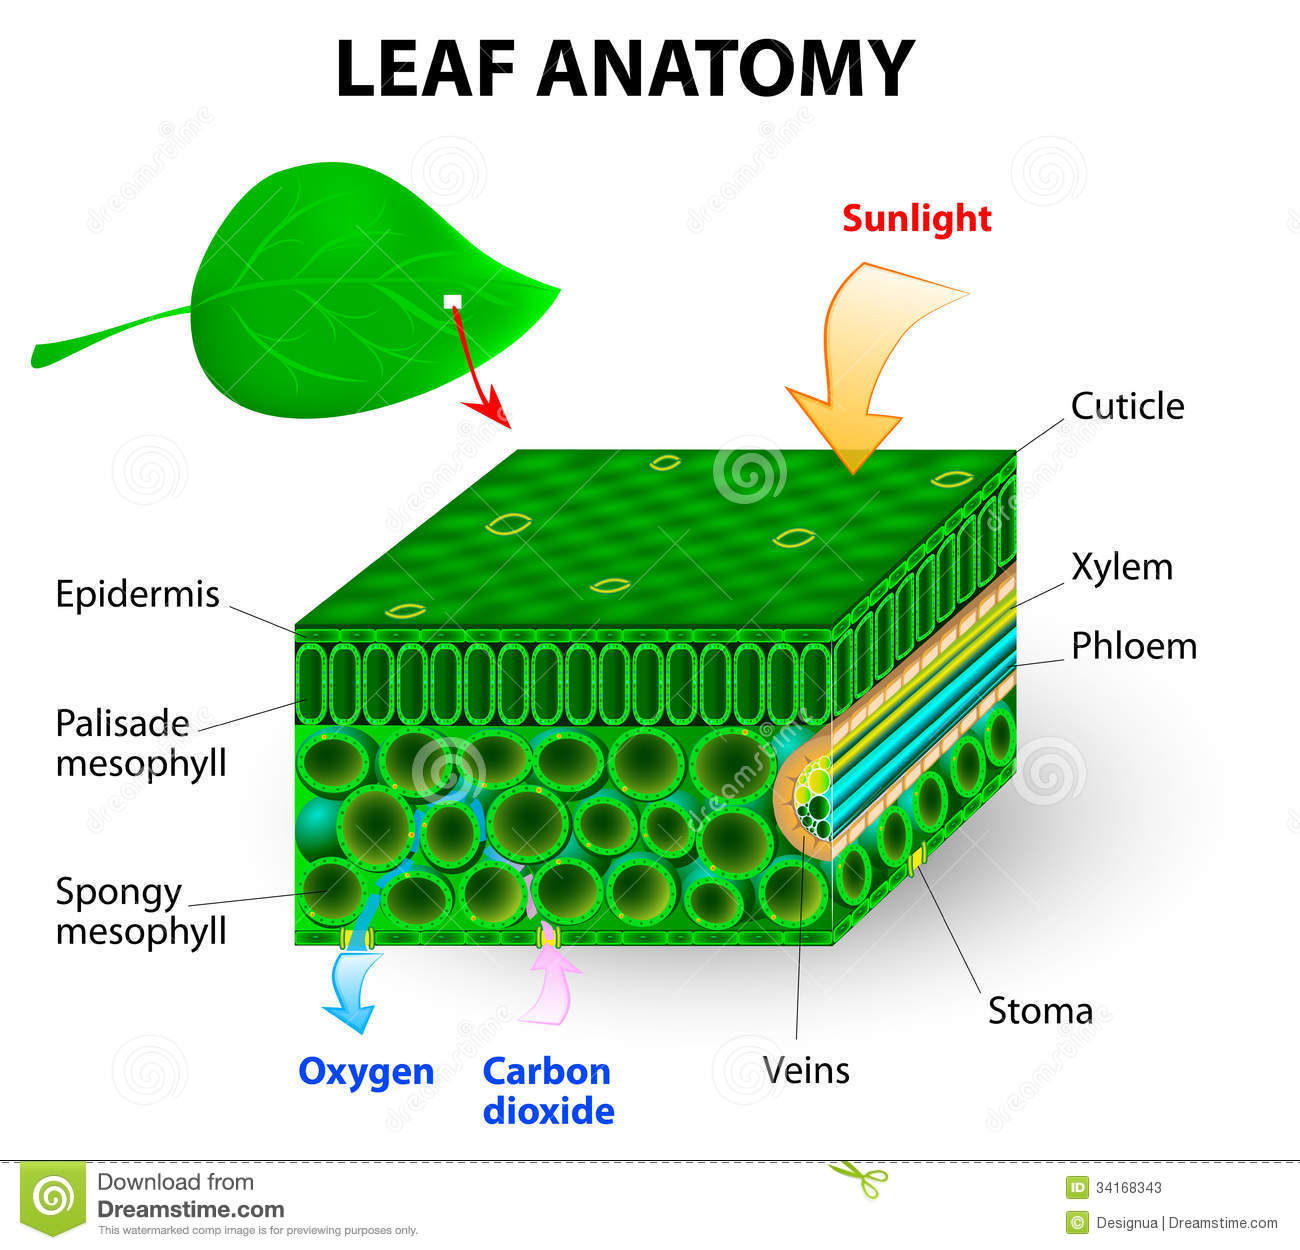 Uncategorized Leaf Anatomy Worksheet plants df lessons tes teach leaf anatomy stock photos image 34168343